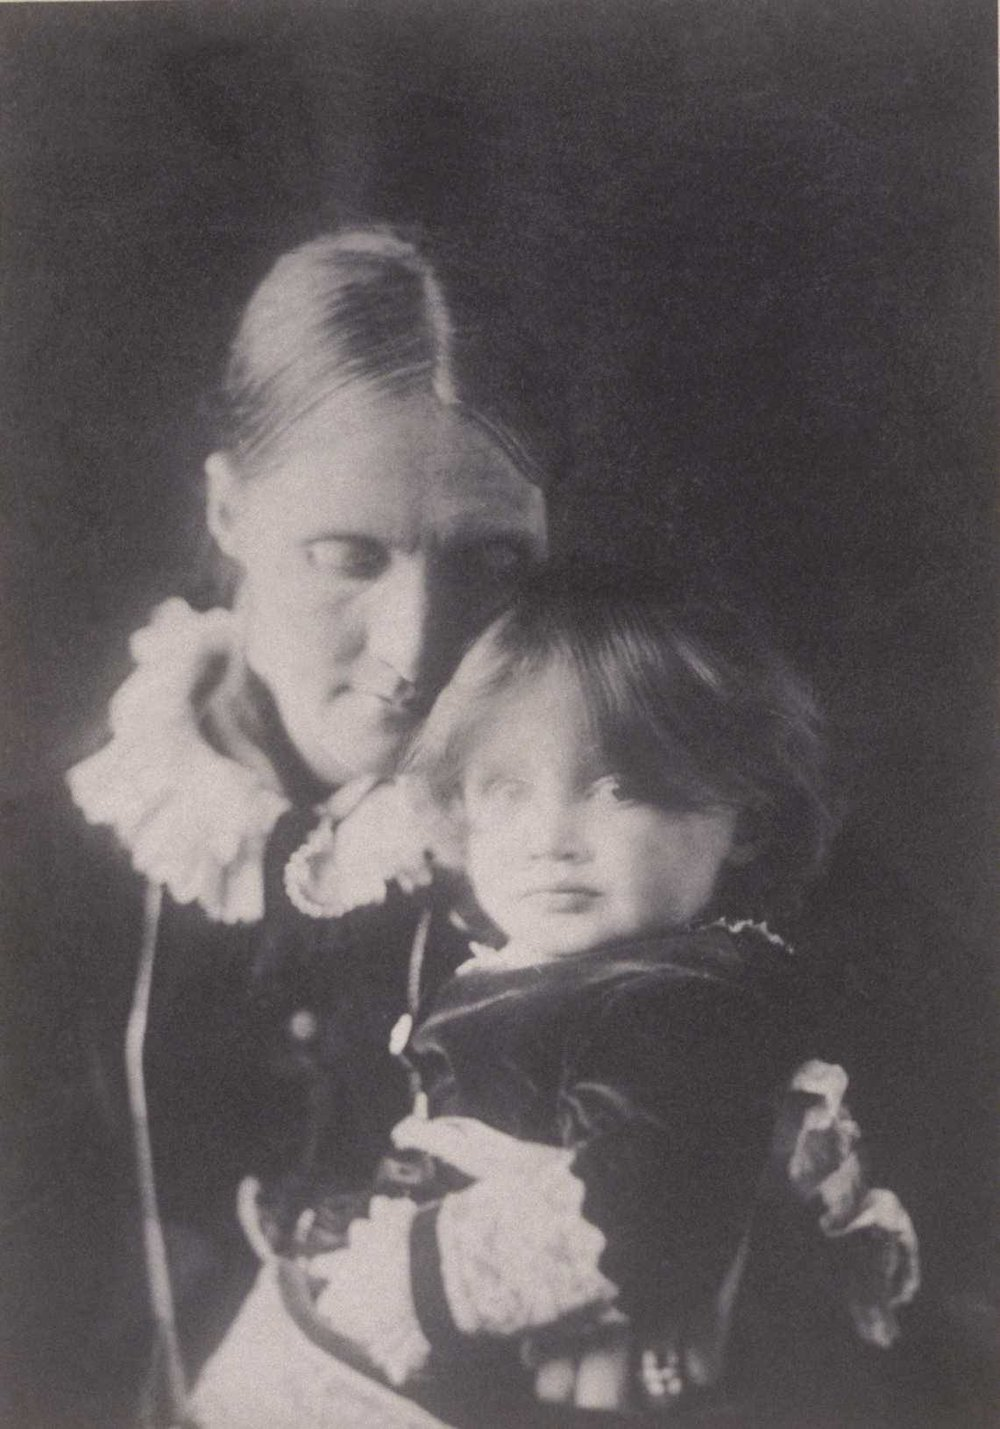 A young Virginia (Woolf) with her mother, Julia Stephen. Photo by Henry H. H. Cameron via  Camberwell Foxes